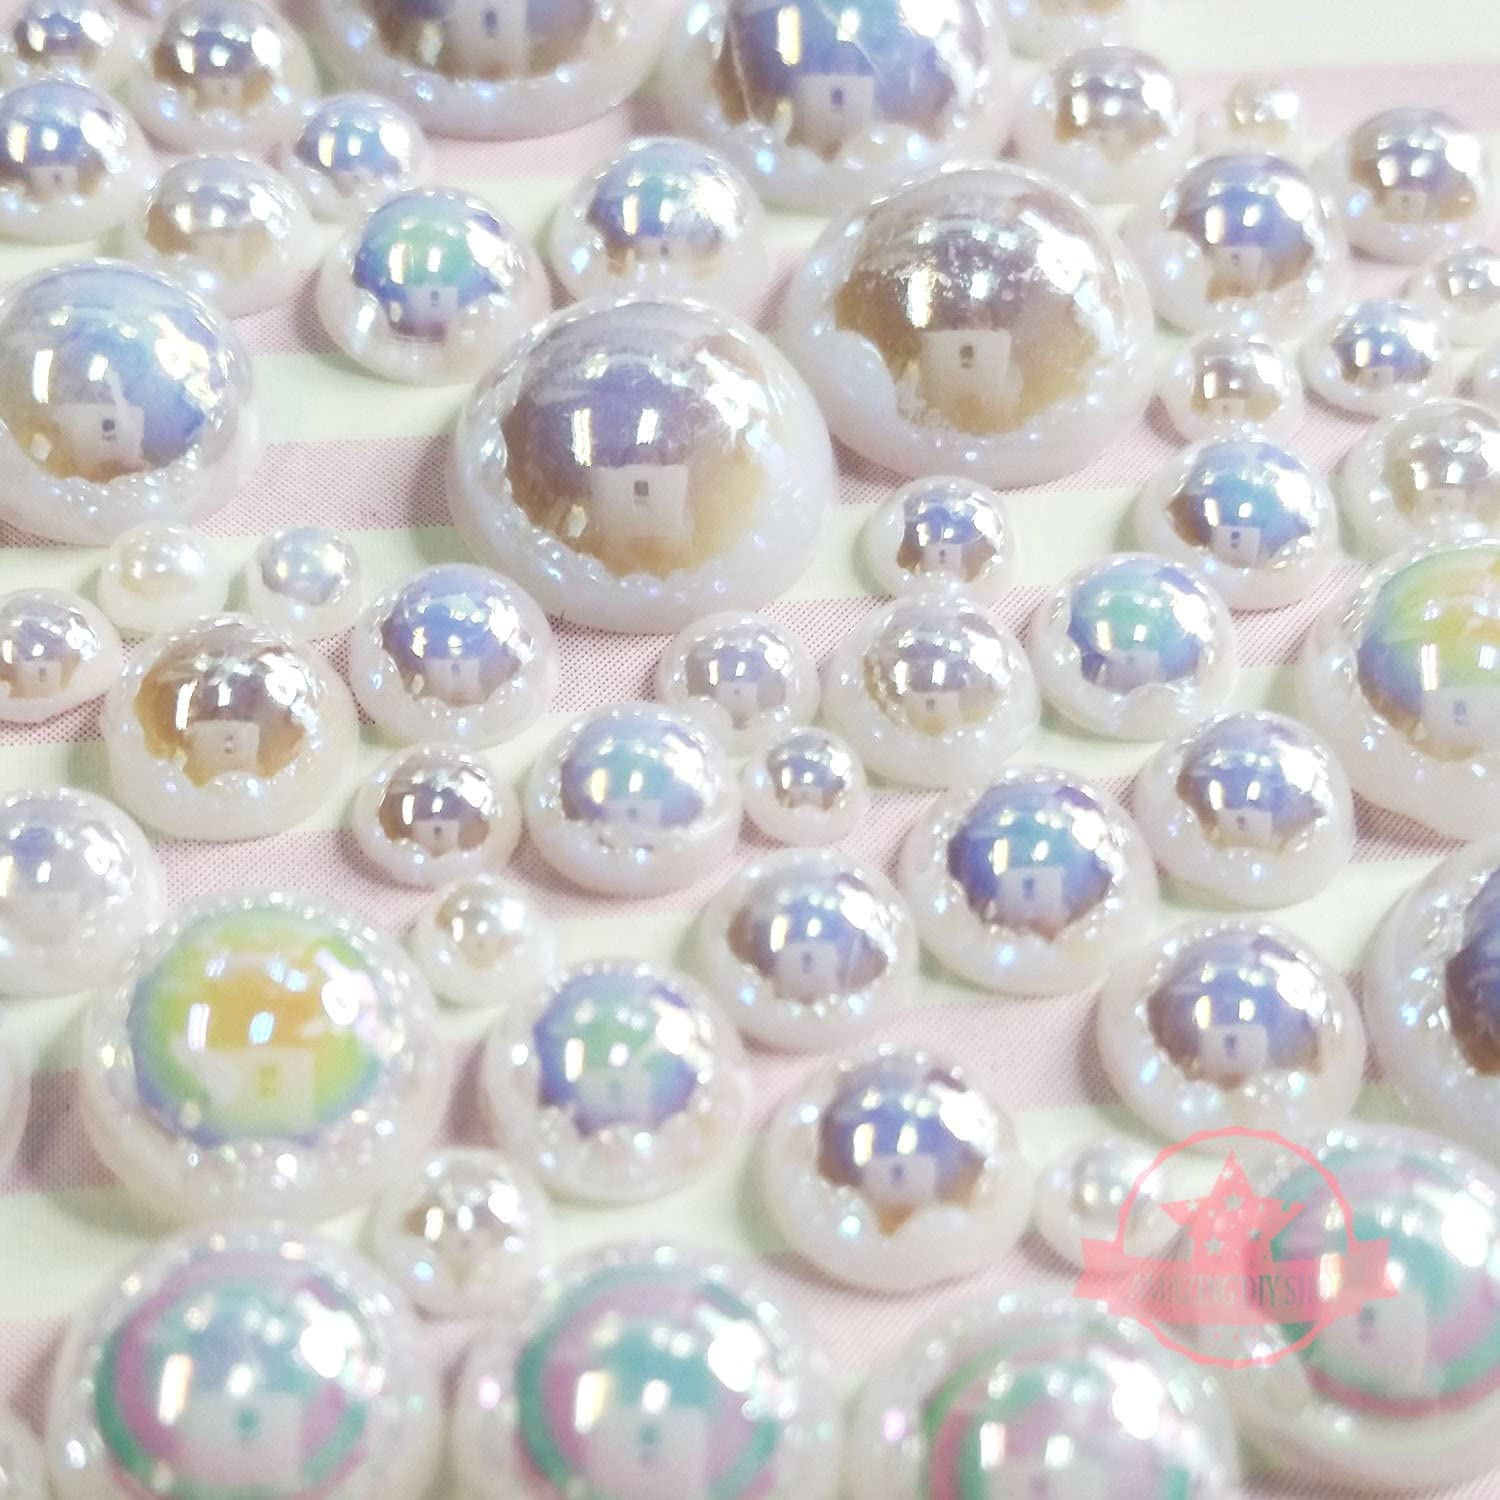 400 pcs 2mm 10mm White resin faux round Shiny Pearls Flatback Mix Size Cabochonship with FREE GIFT from GreatDeal68